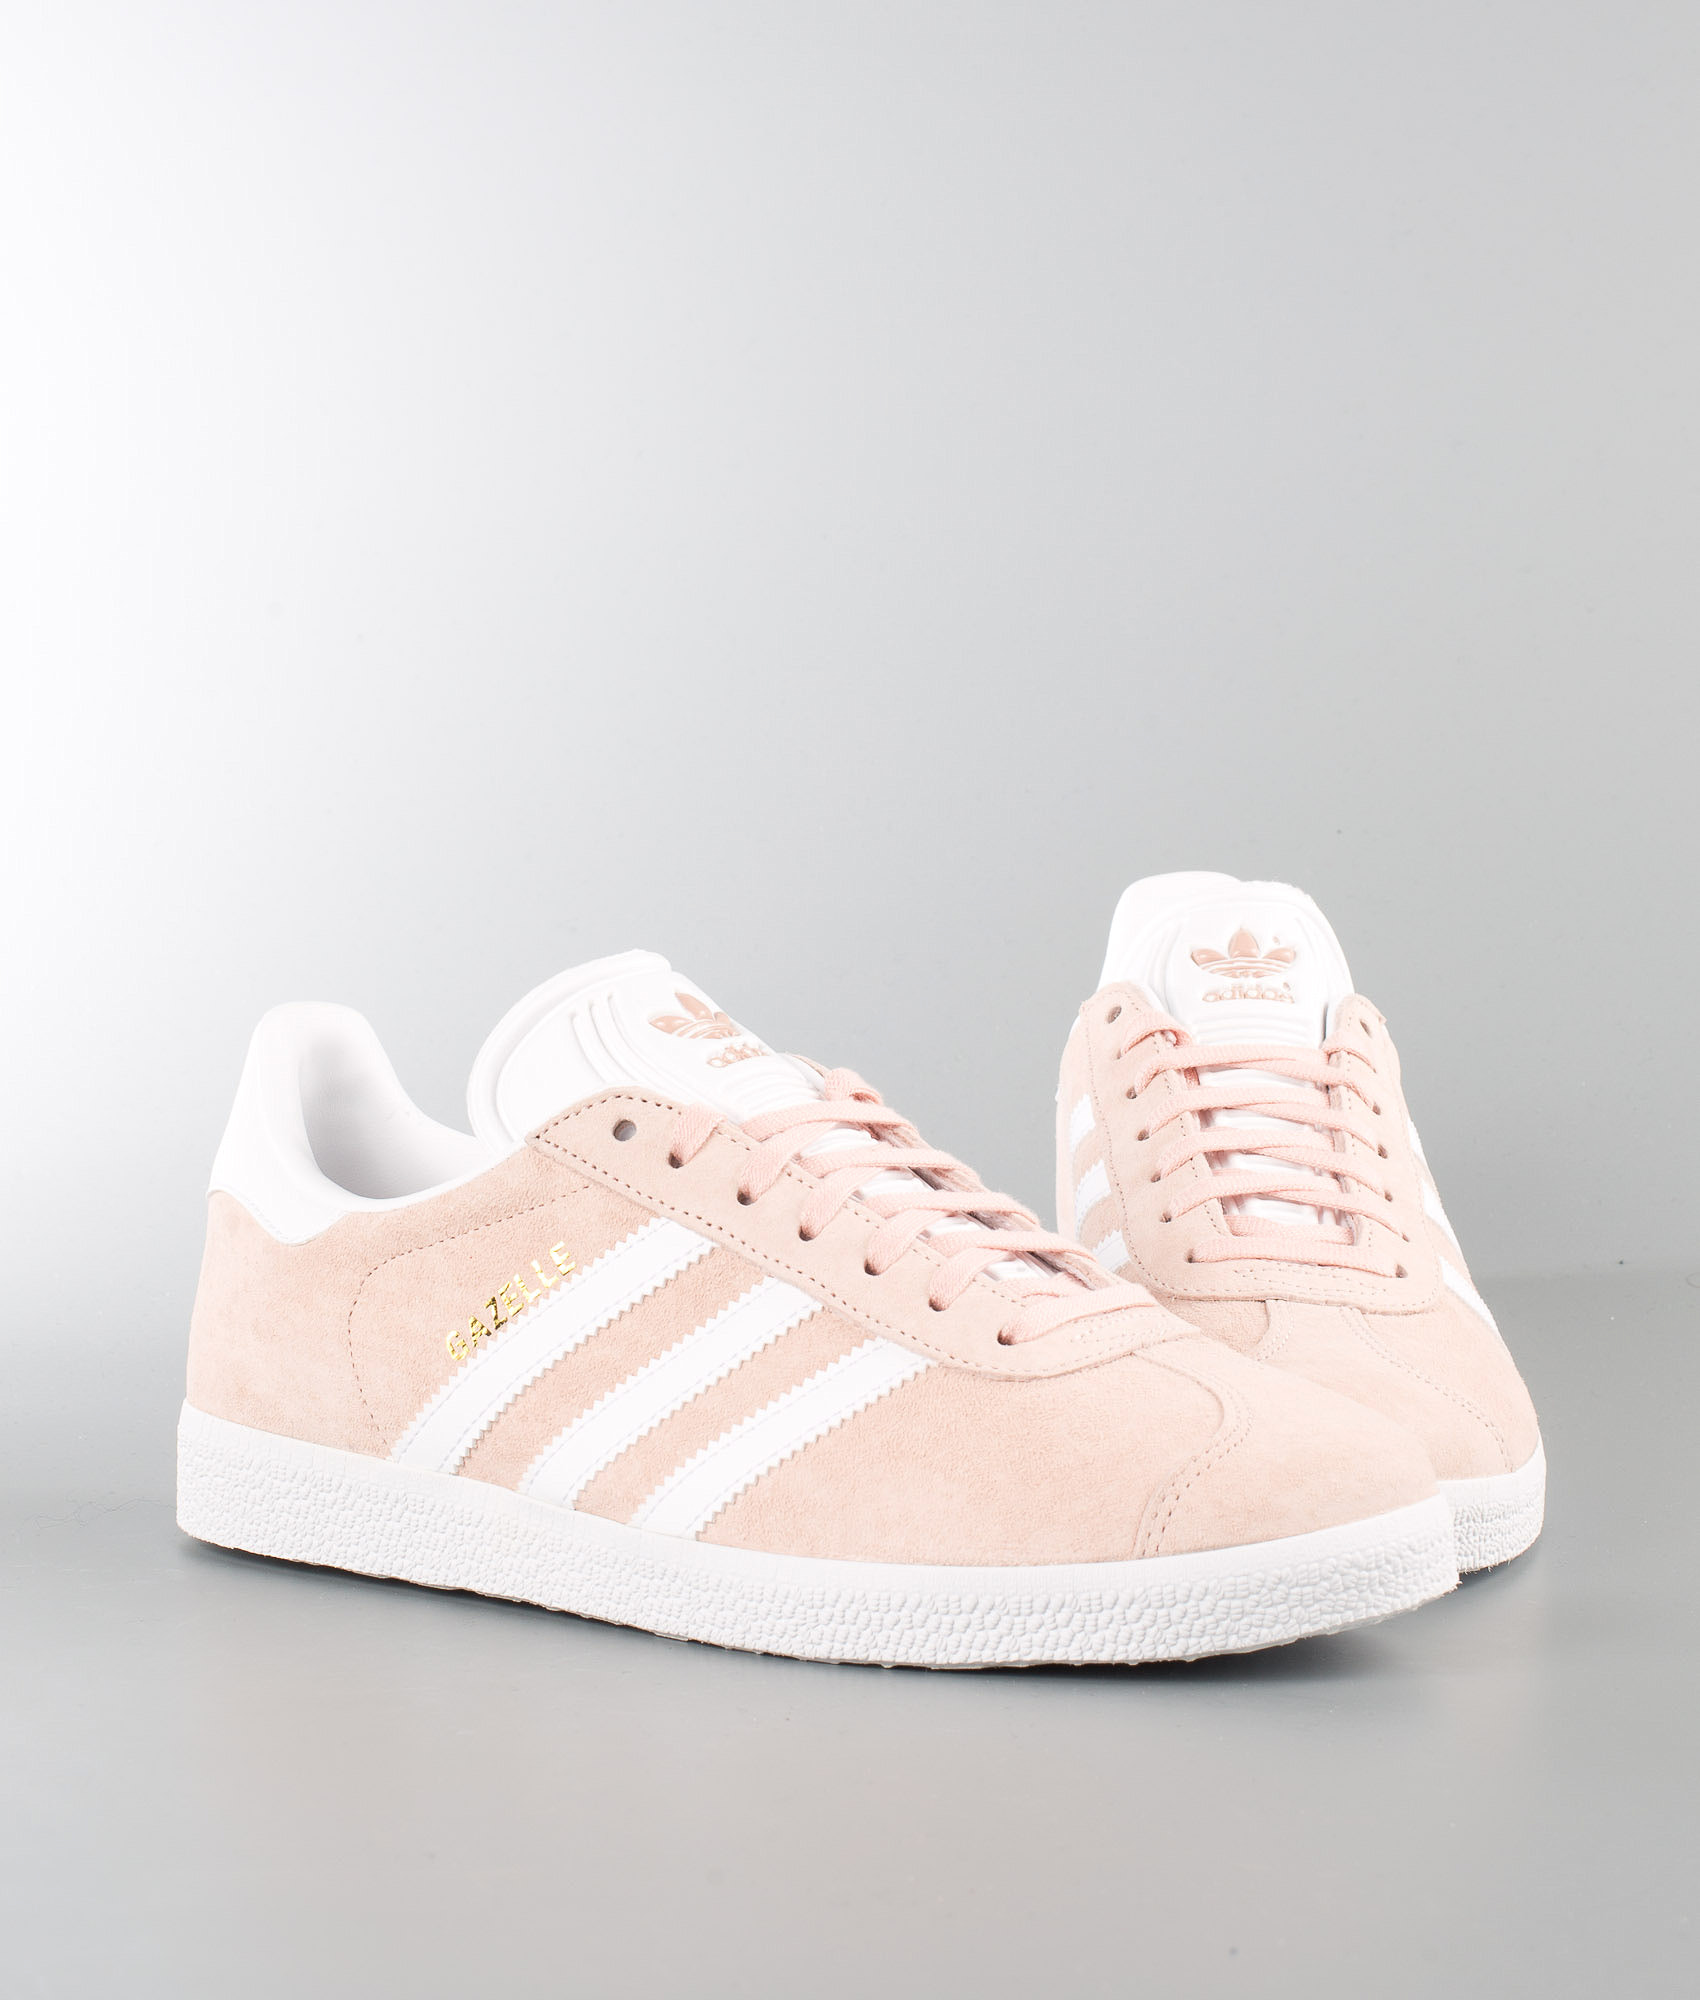 official photos 5aeda 700be Adidas Originals Gazelle Shoes